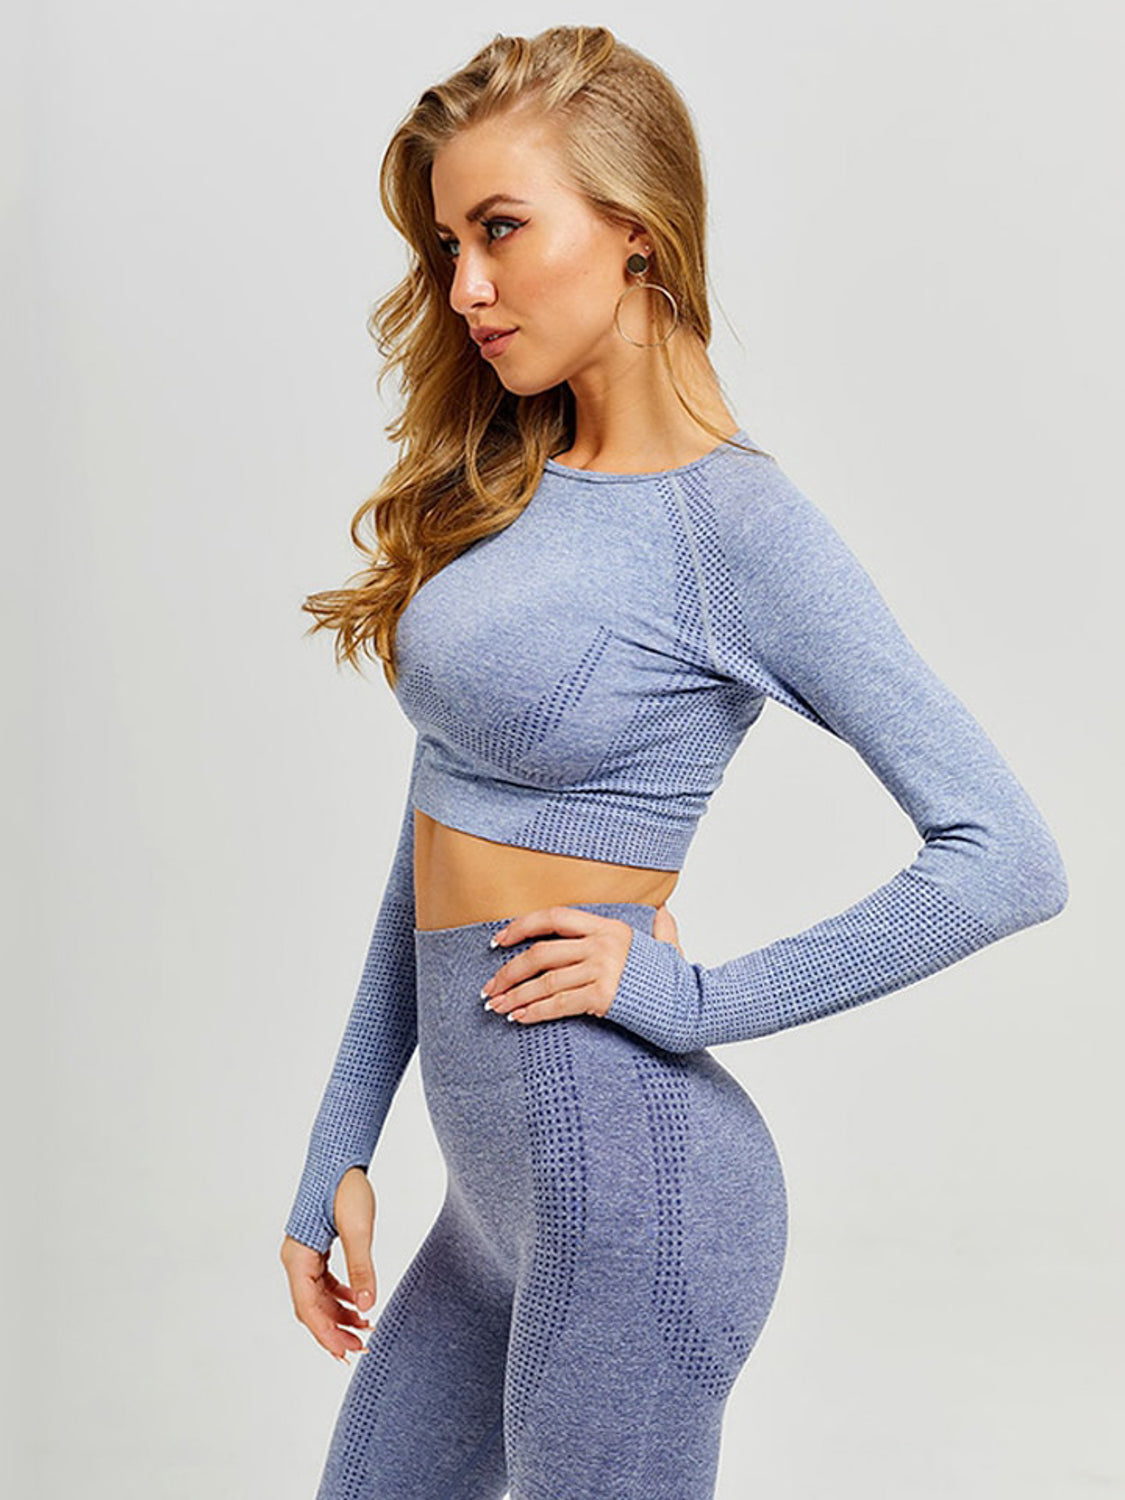 MOVI Sculpt+ Flex Sleeved Crop - BLUE